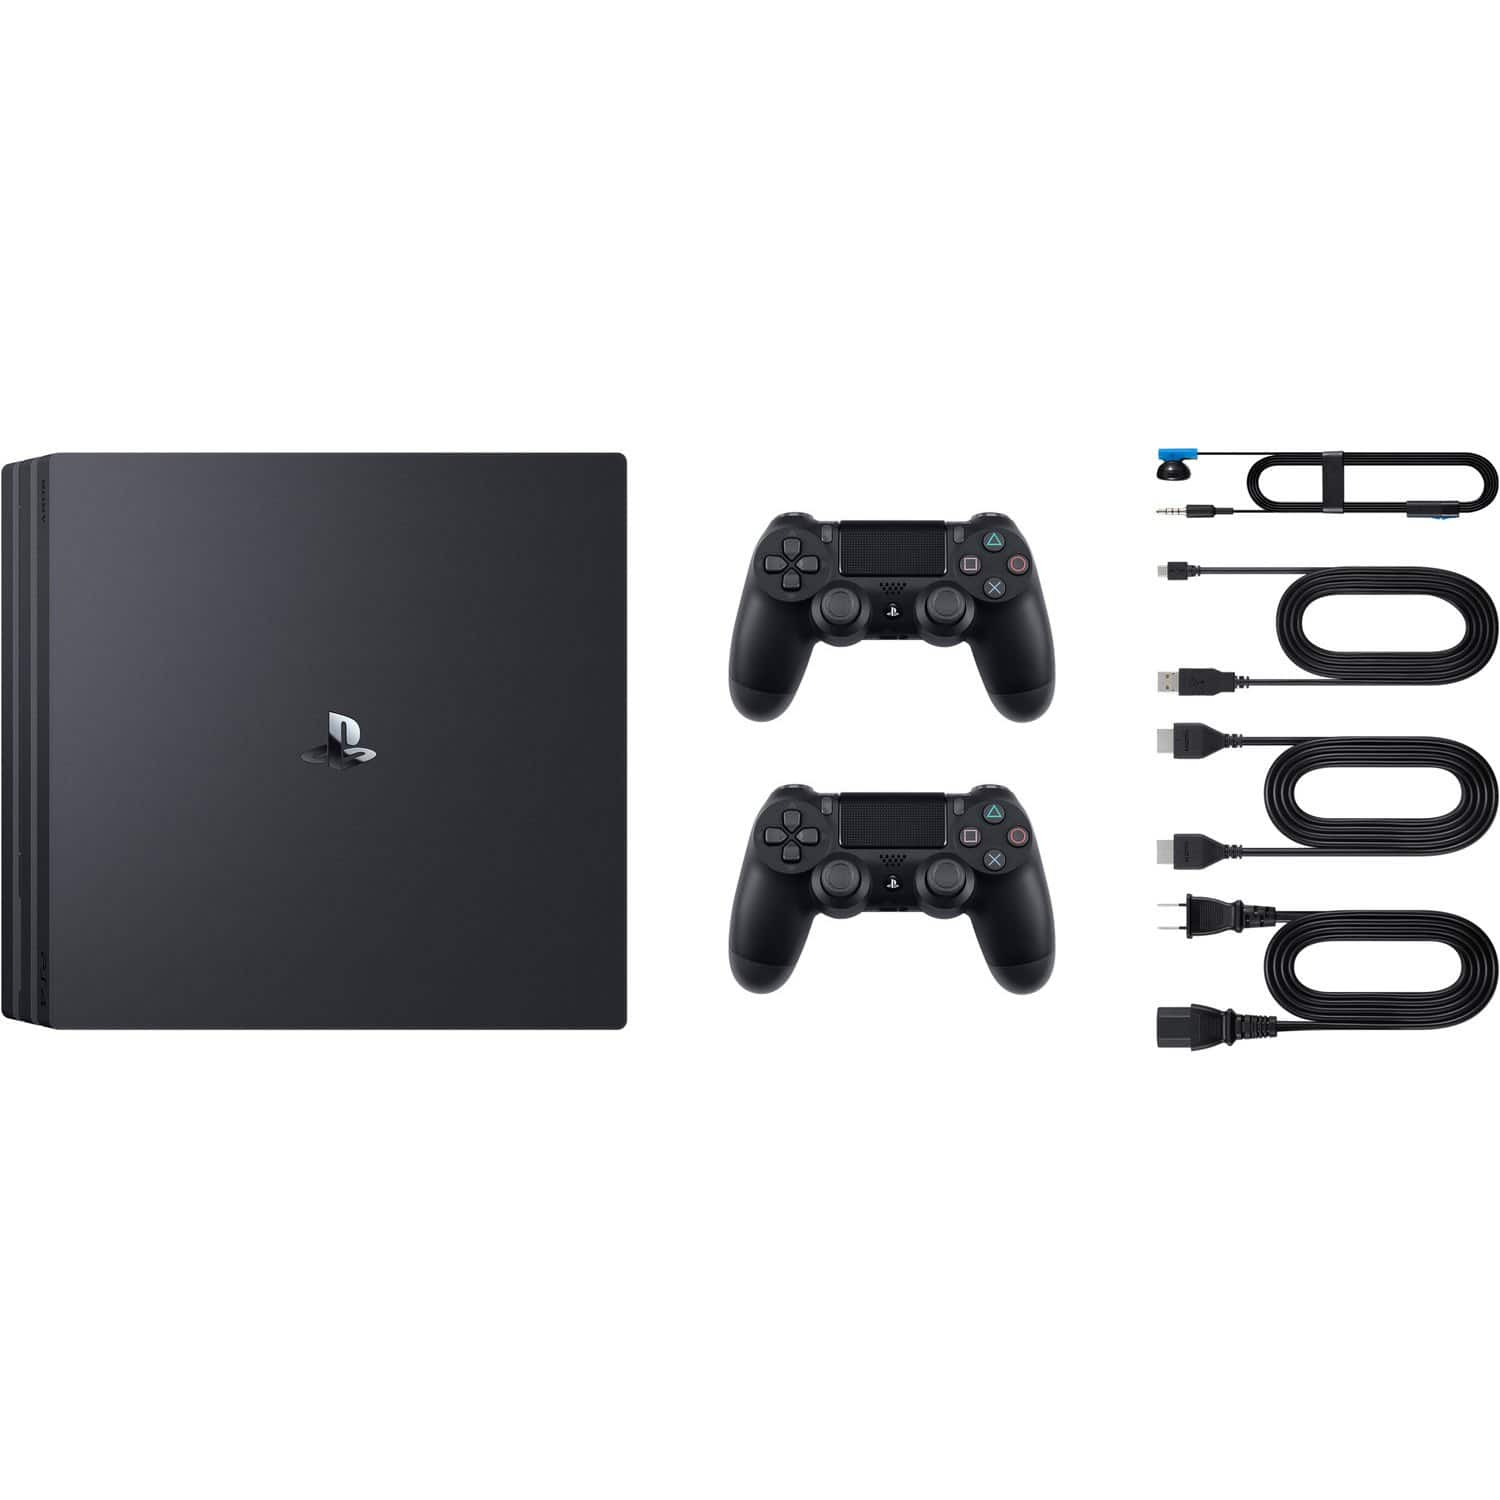 1TB Sony Playstation 4 PRO Console w/ Extra Dualshock Wireless Controller Bundle $379.95 AC + Free S/H